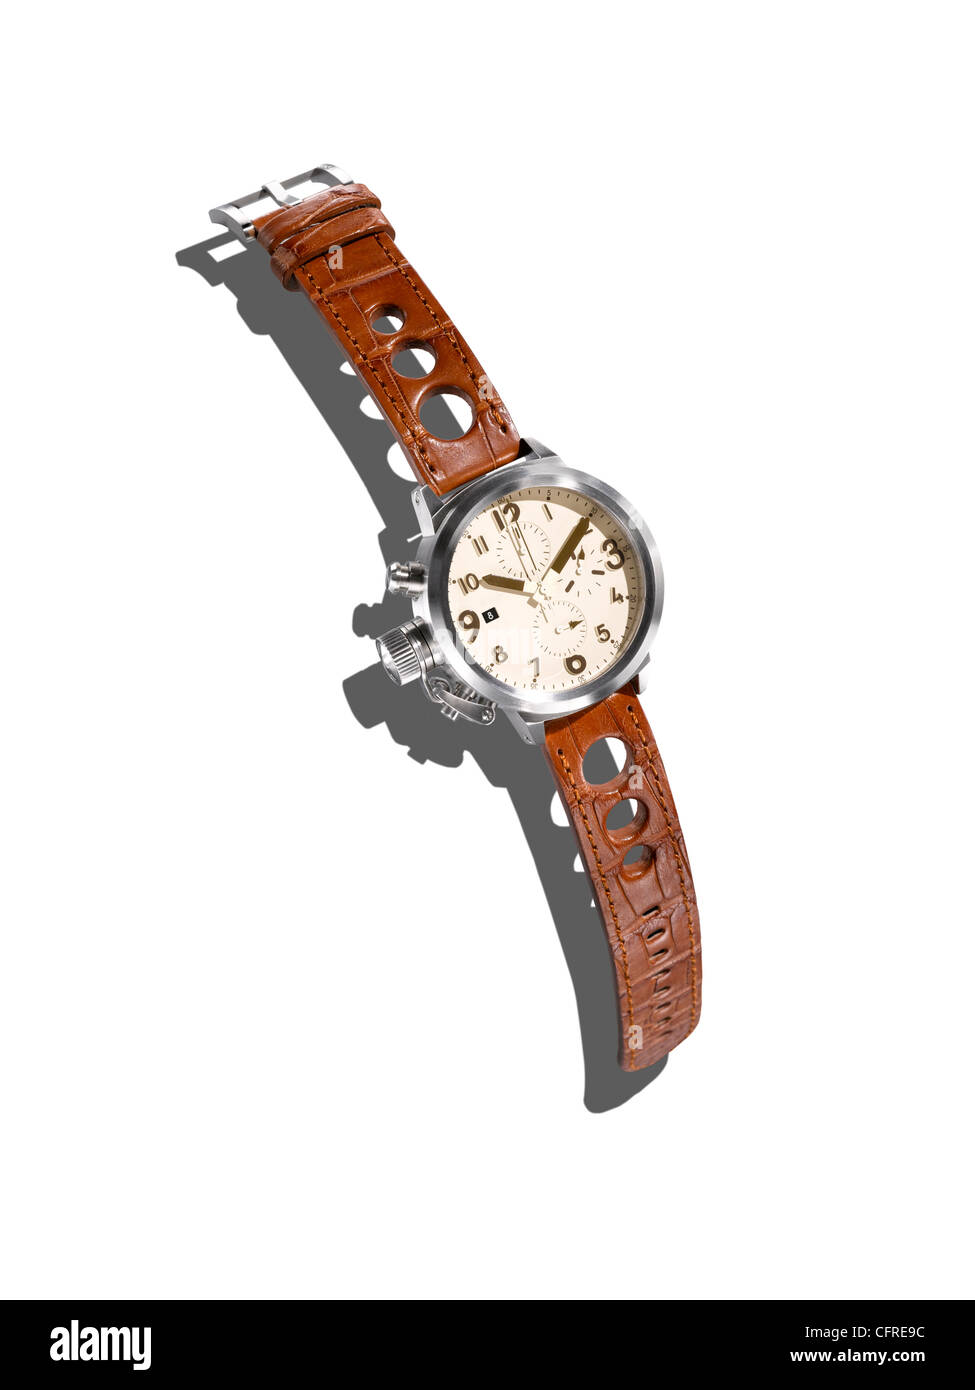 A modern watch with a leather strap on a white background with creative shadow. - Stock Image